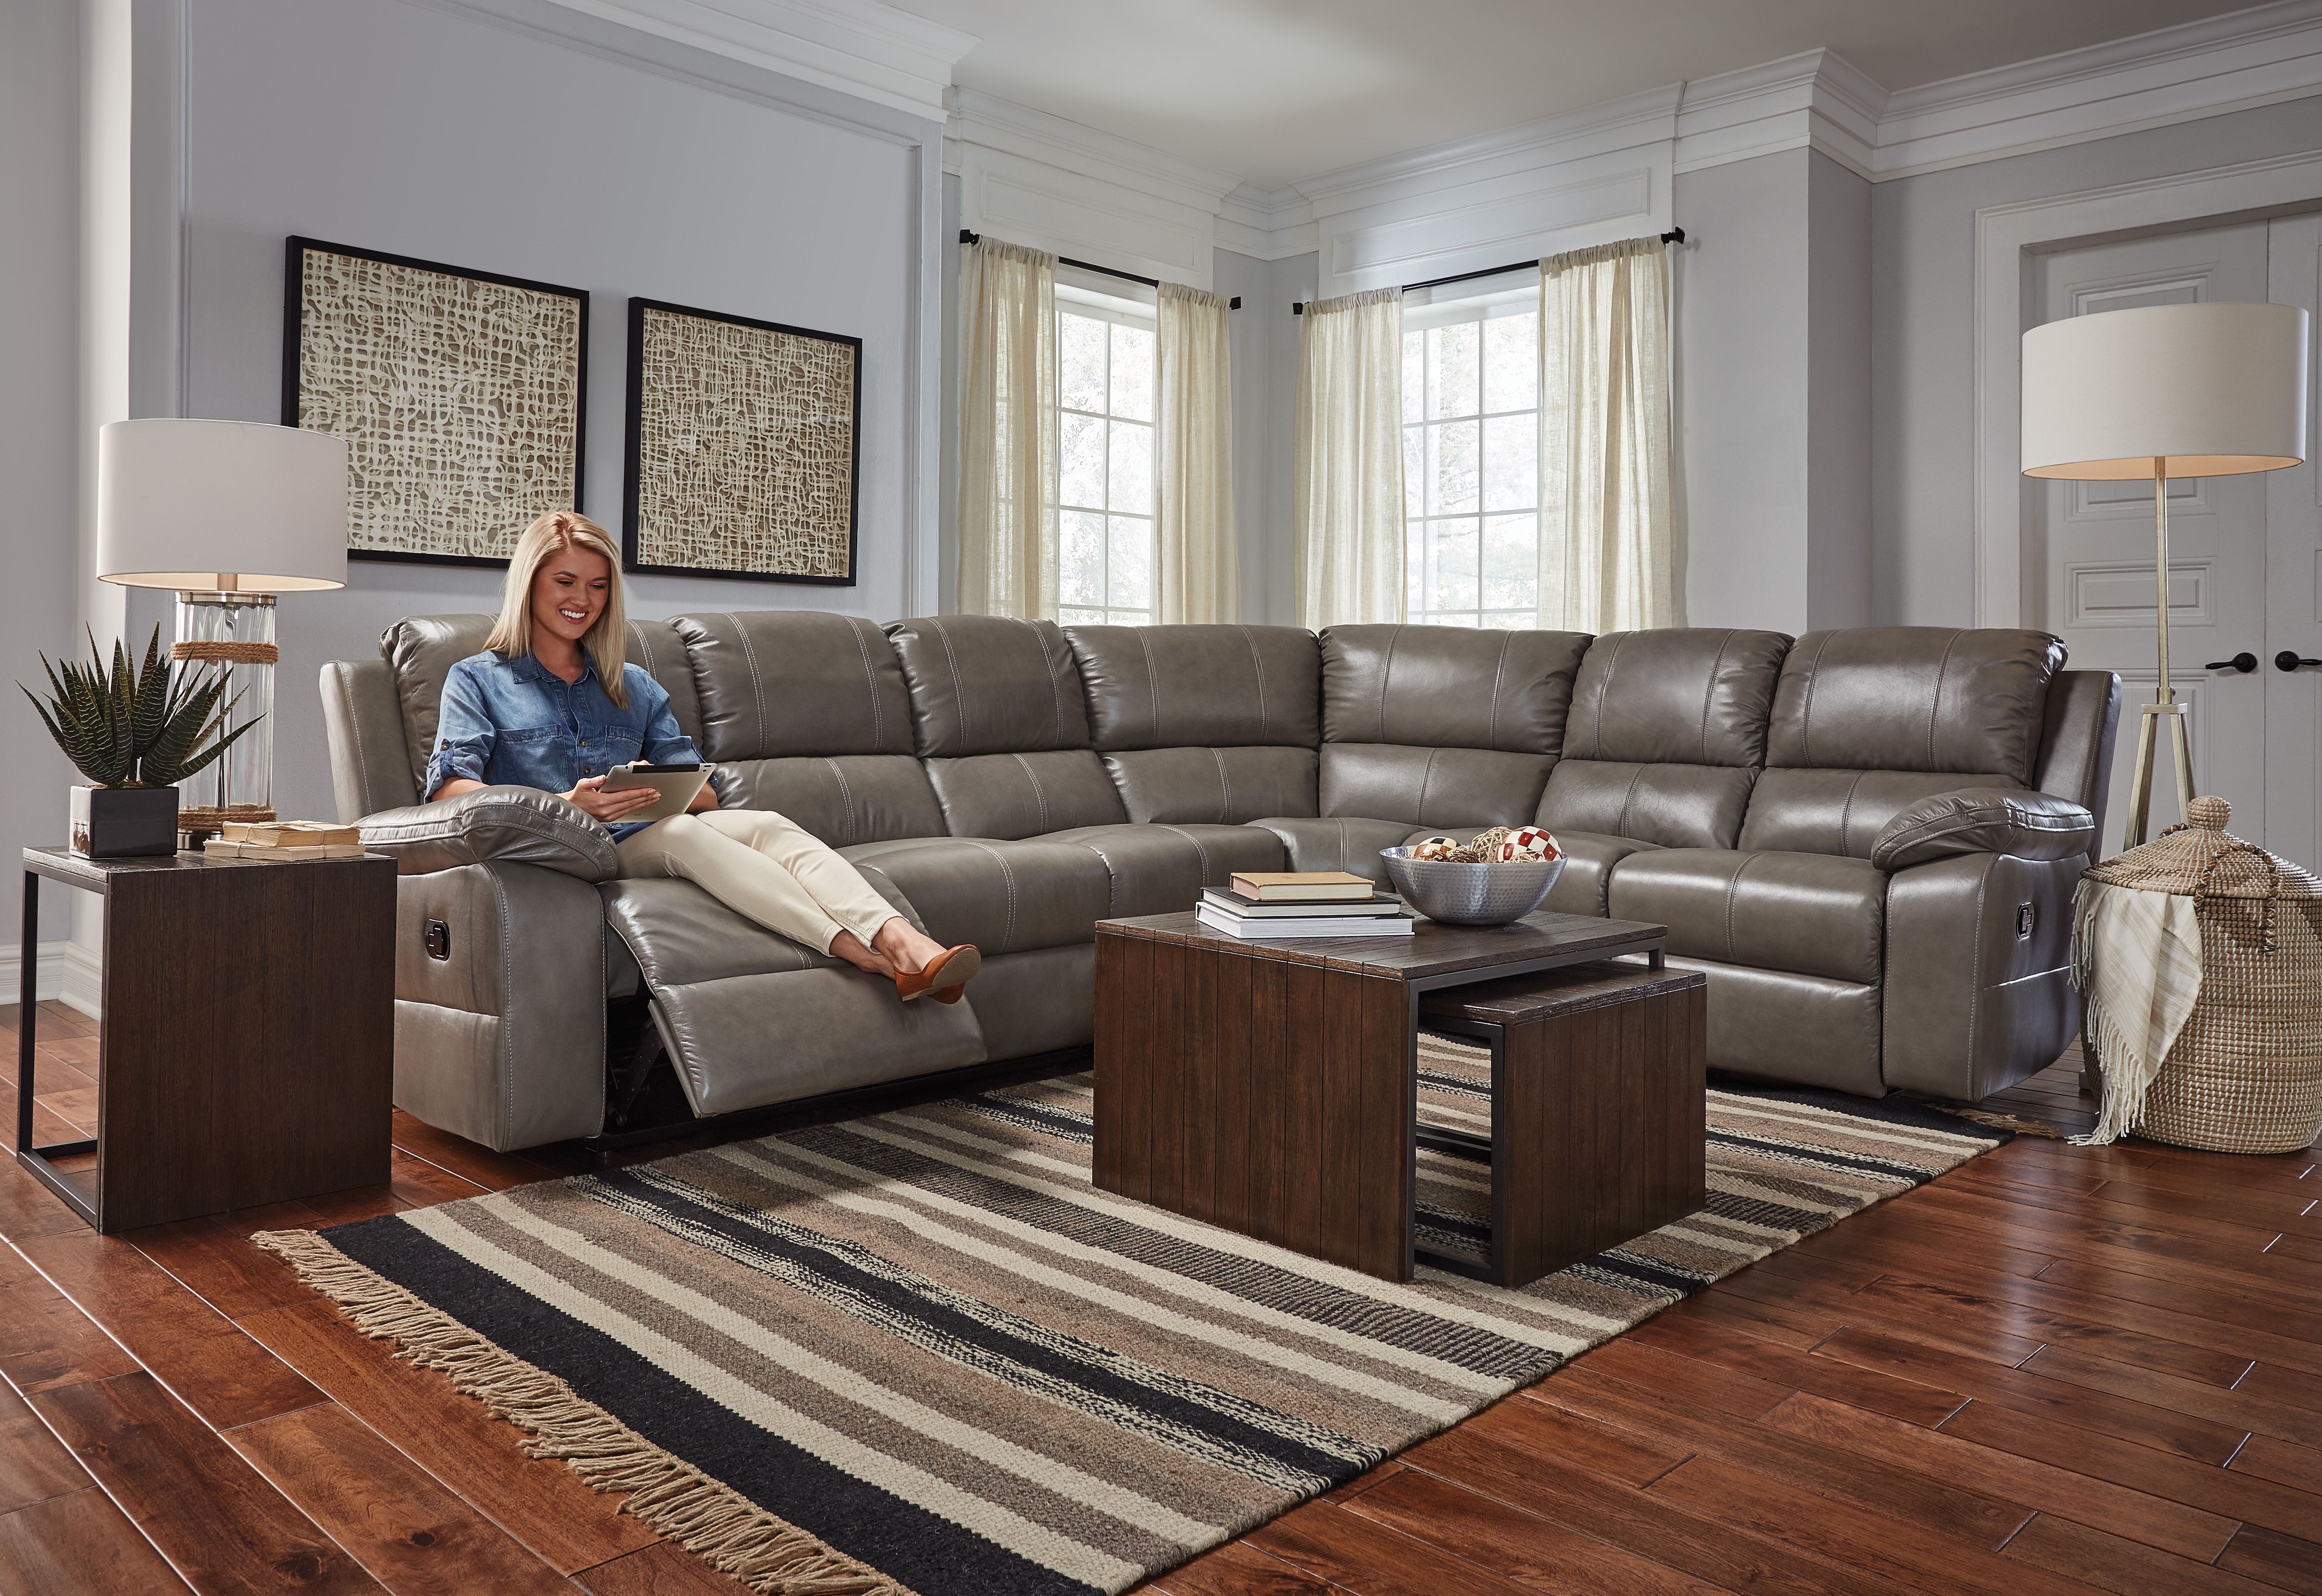 Chelsea 4 Piece Reclining Leather Sectional - Gray